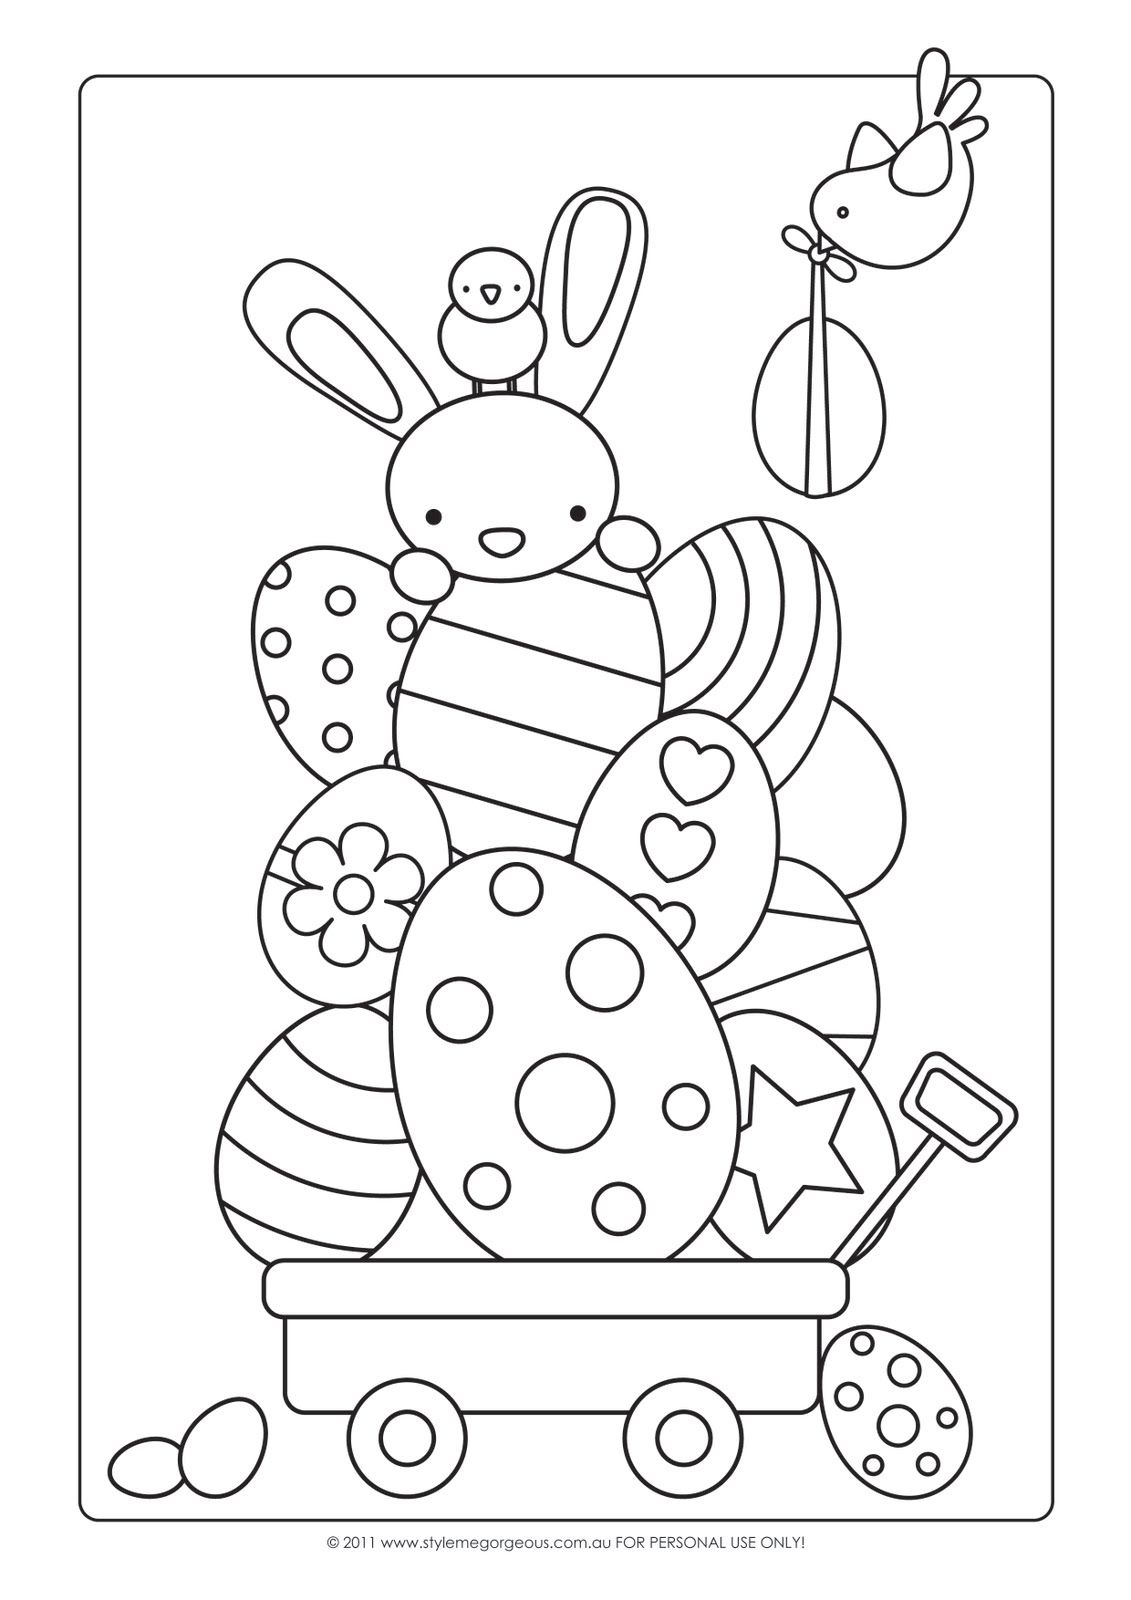 Cute kawaii digi art for easter to print out to keep kids amused at the dinner